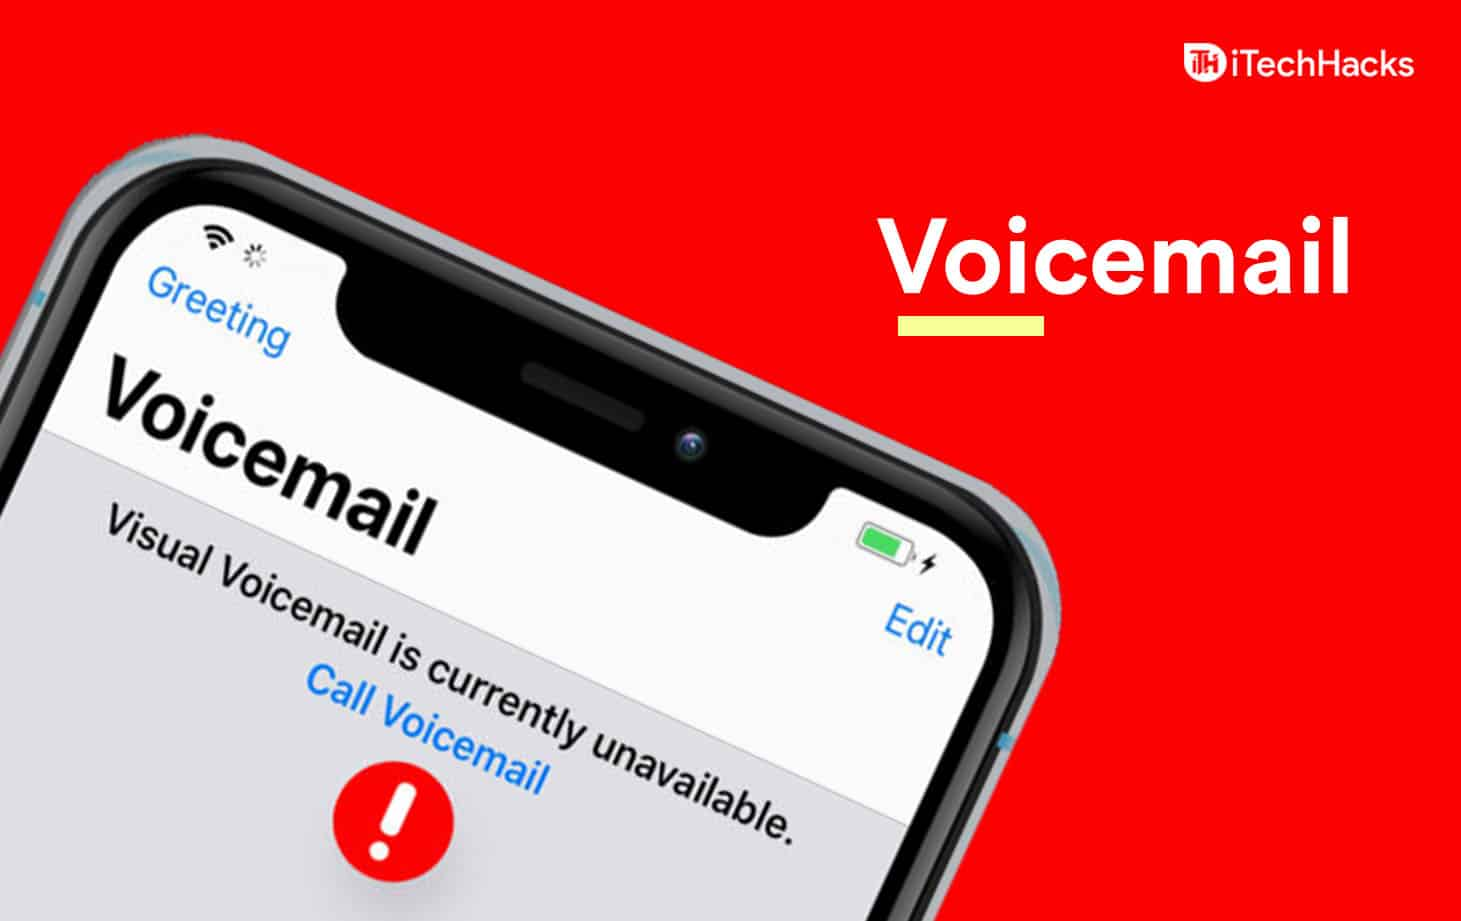 How To Fix Voicemail Not Working On iPhone